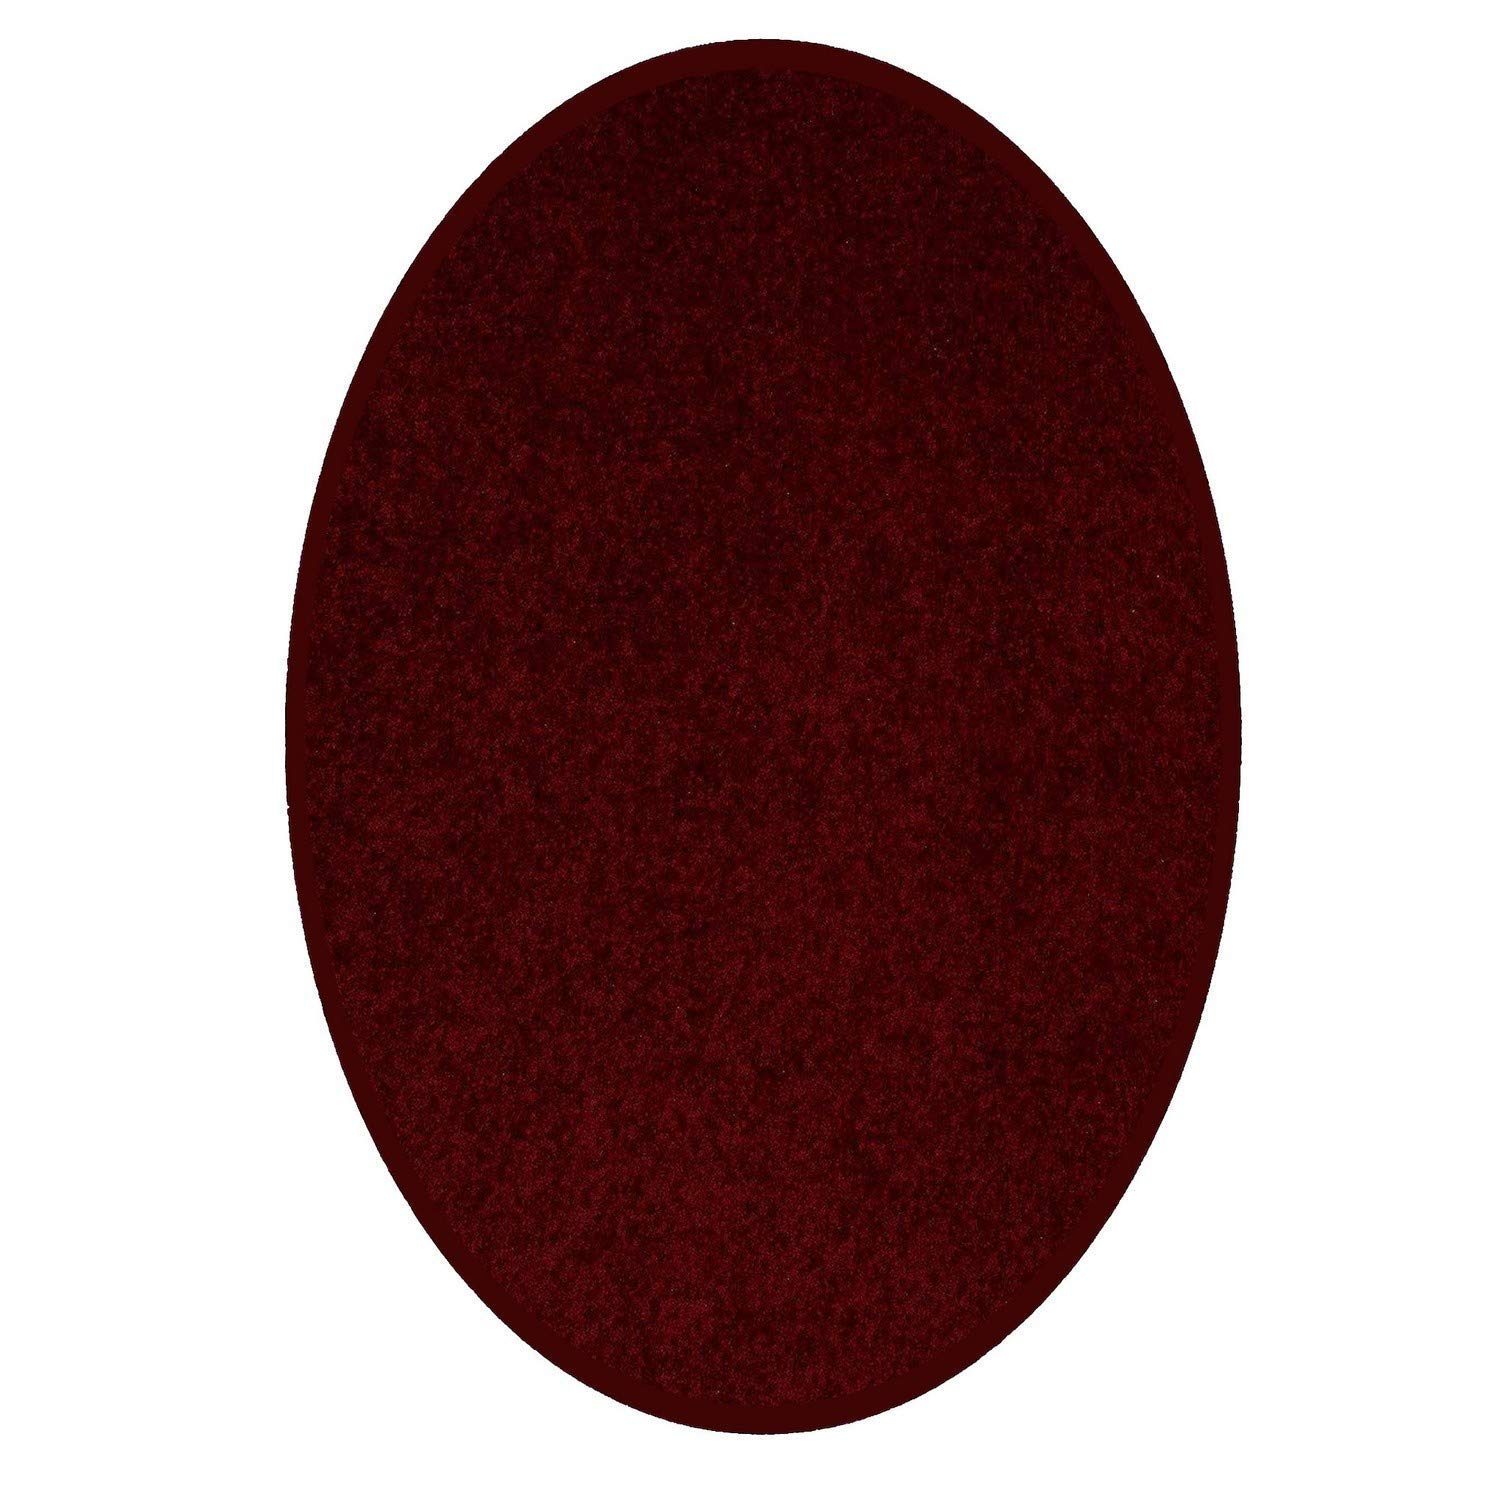 Pet Friendly Rugs Reviews: Ambiant Pet Friendly Solid Color Area Rugs Burgundy